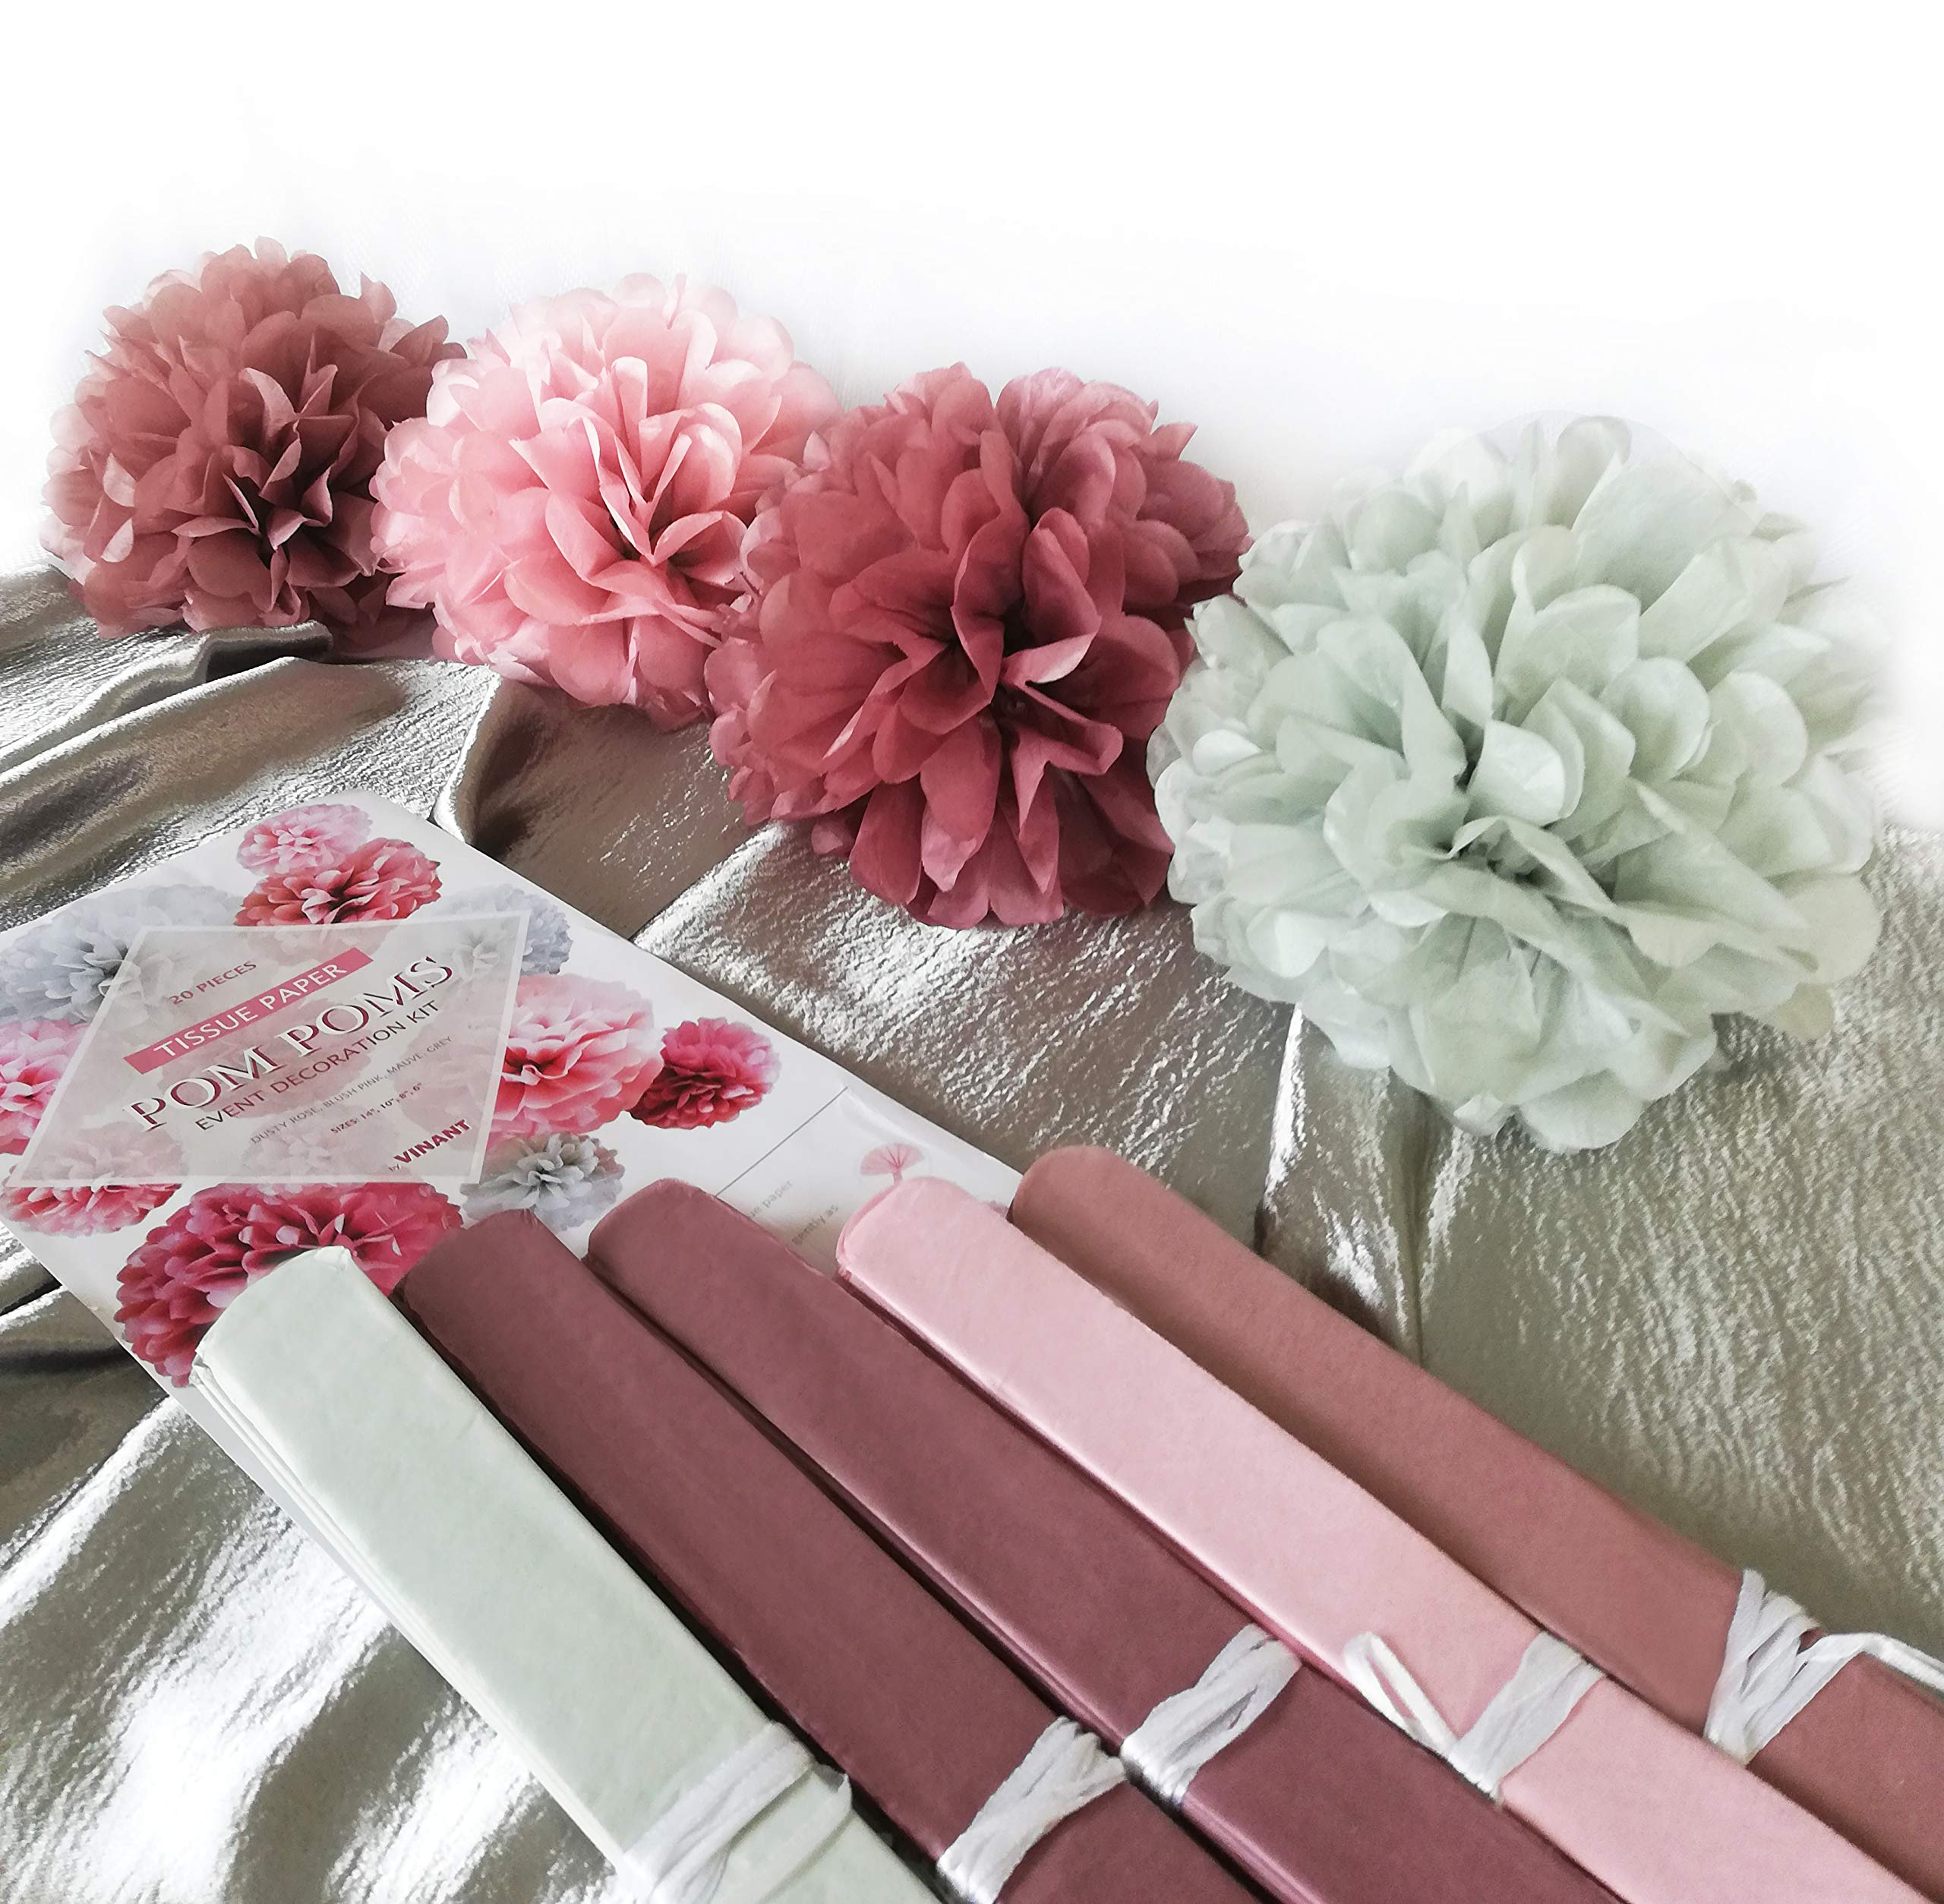 VINANT 20 PCS Tissue Paper Pom Poms - Paper Flower - Party Decoration for Birthday Party - Baby Shower - Bridal Shower - Wedding - Bachelorette - Dusty Rose, Mauve, Blush Pink, Grey - 14'', 10'', 8'', 6'' by VINANT (Image #3)